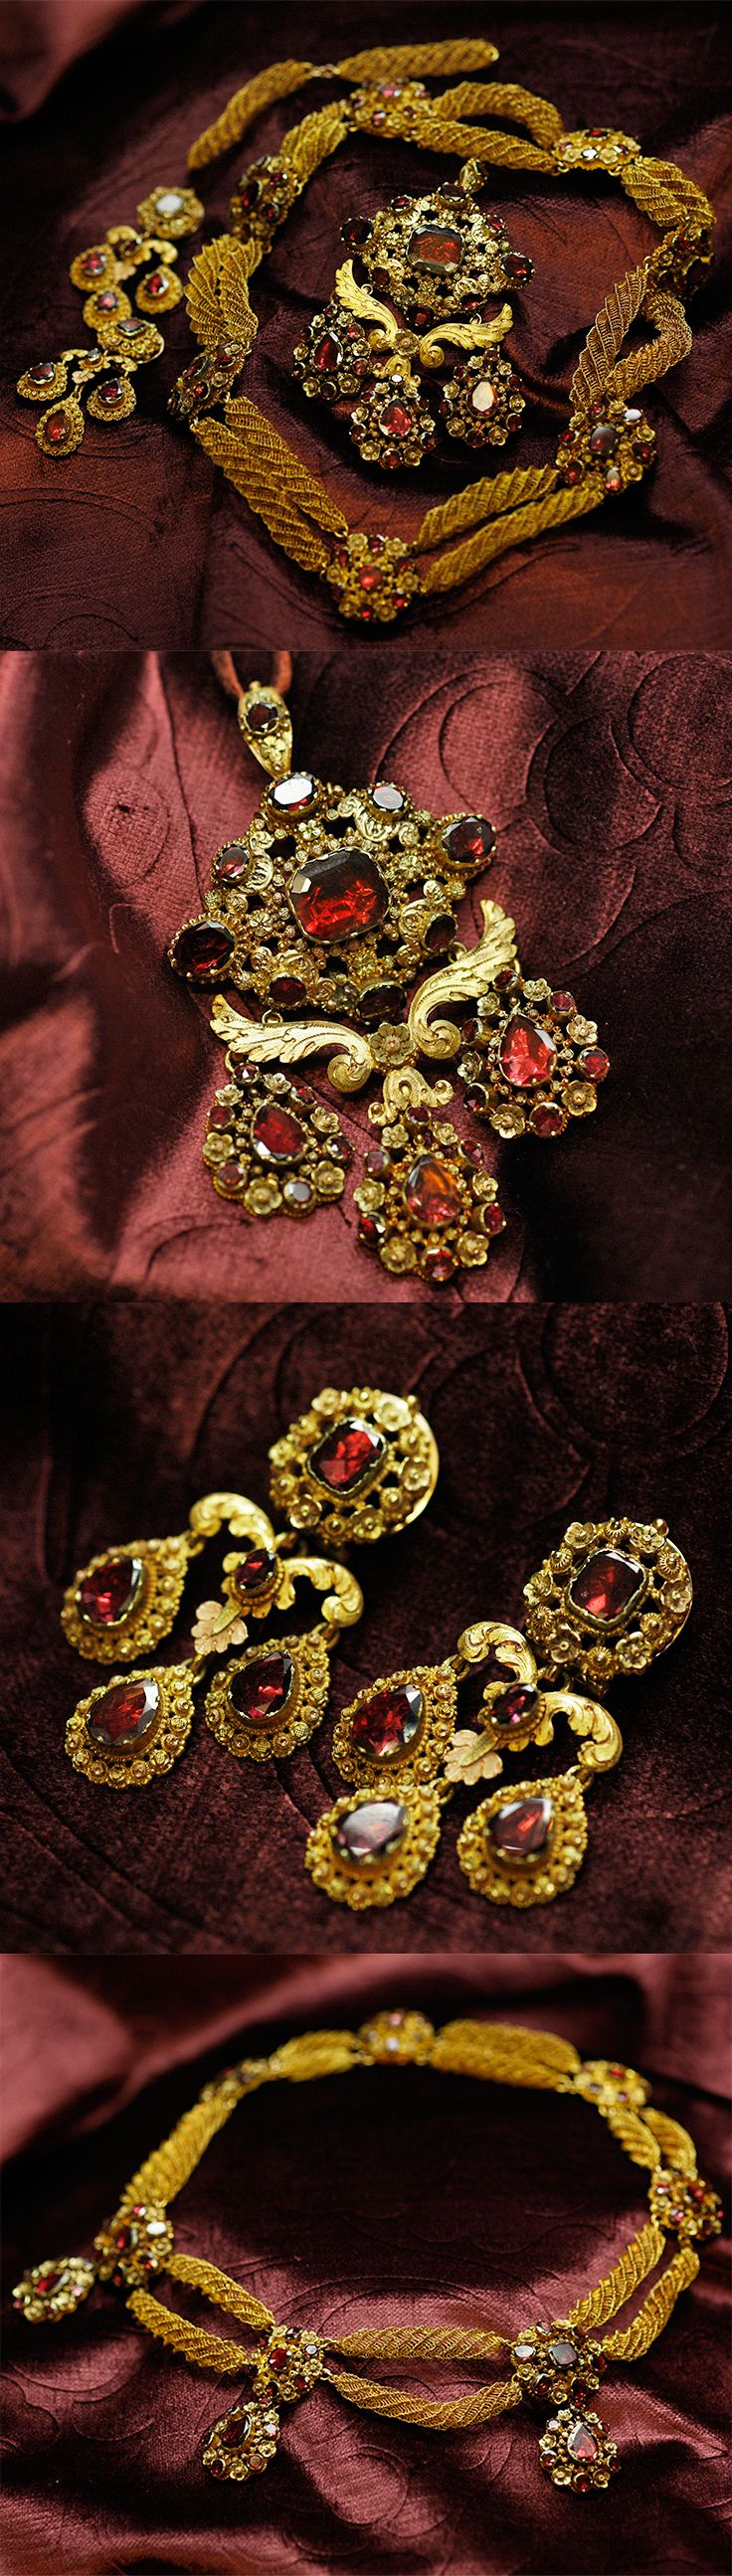 Garnet and gold parure, France, 1819-1838, comprising with a pendant, canbe worn as a brooch, a pair of earrings, a choker, garnets, 18k gold, with two spare chains